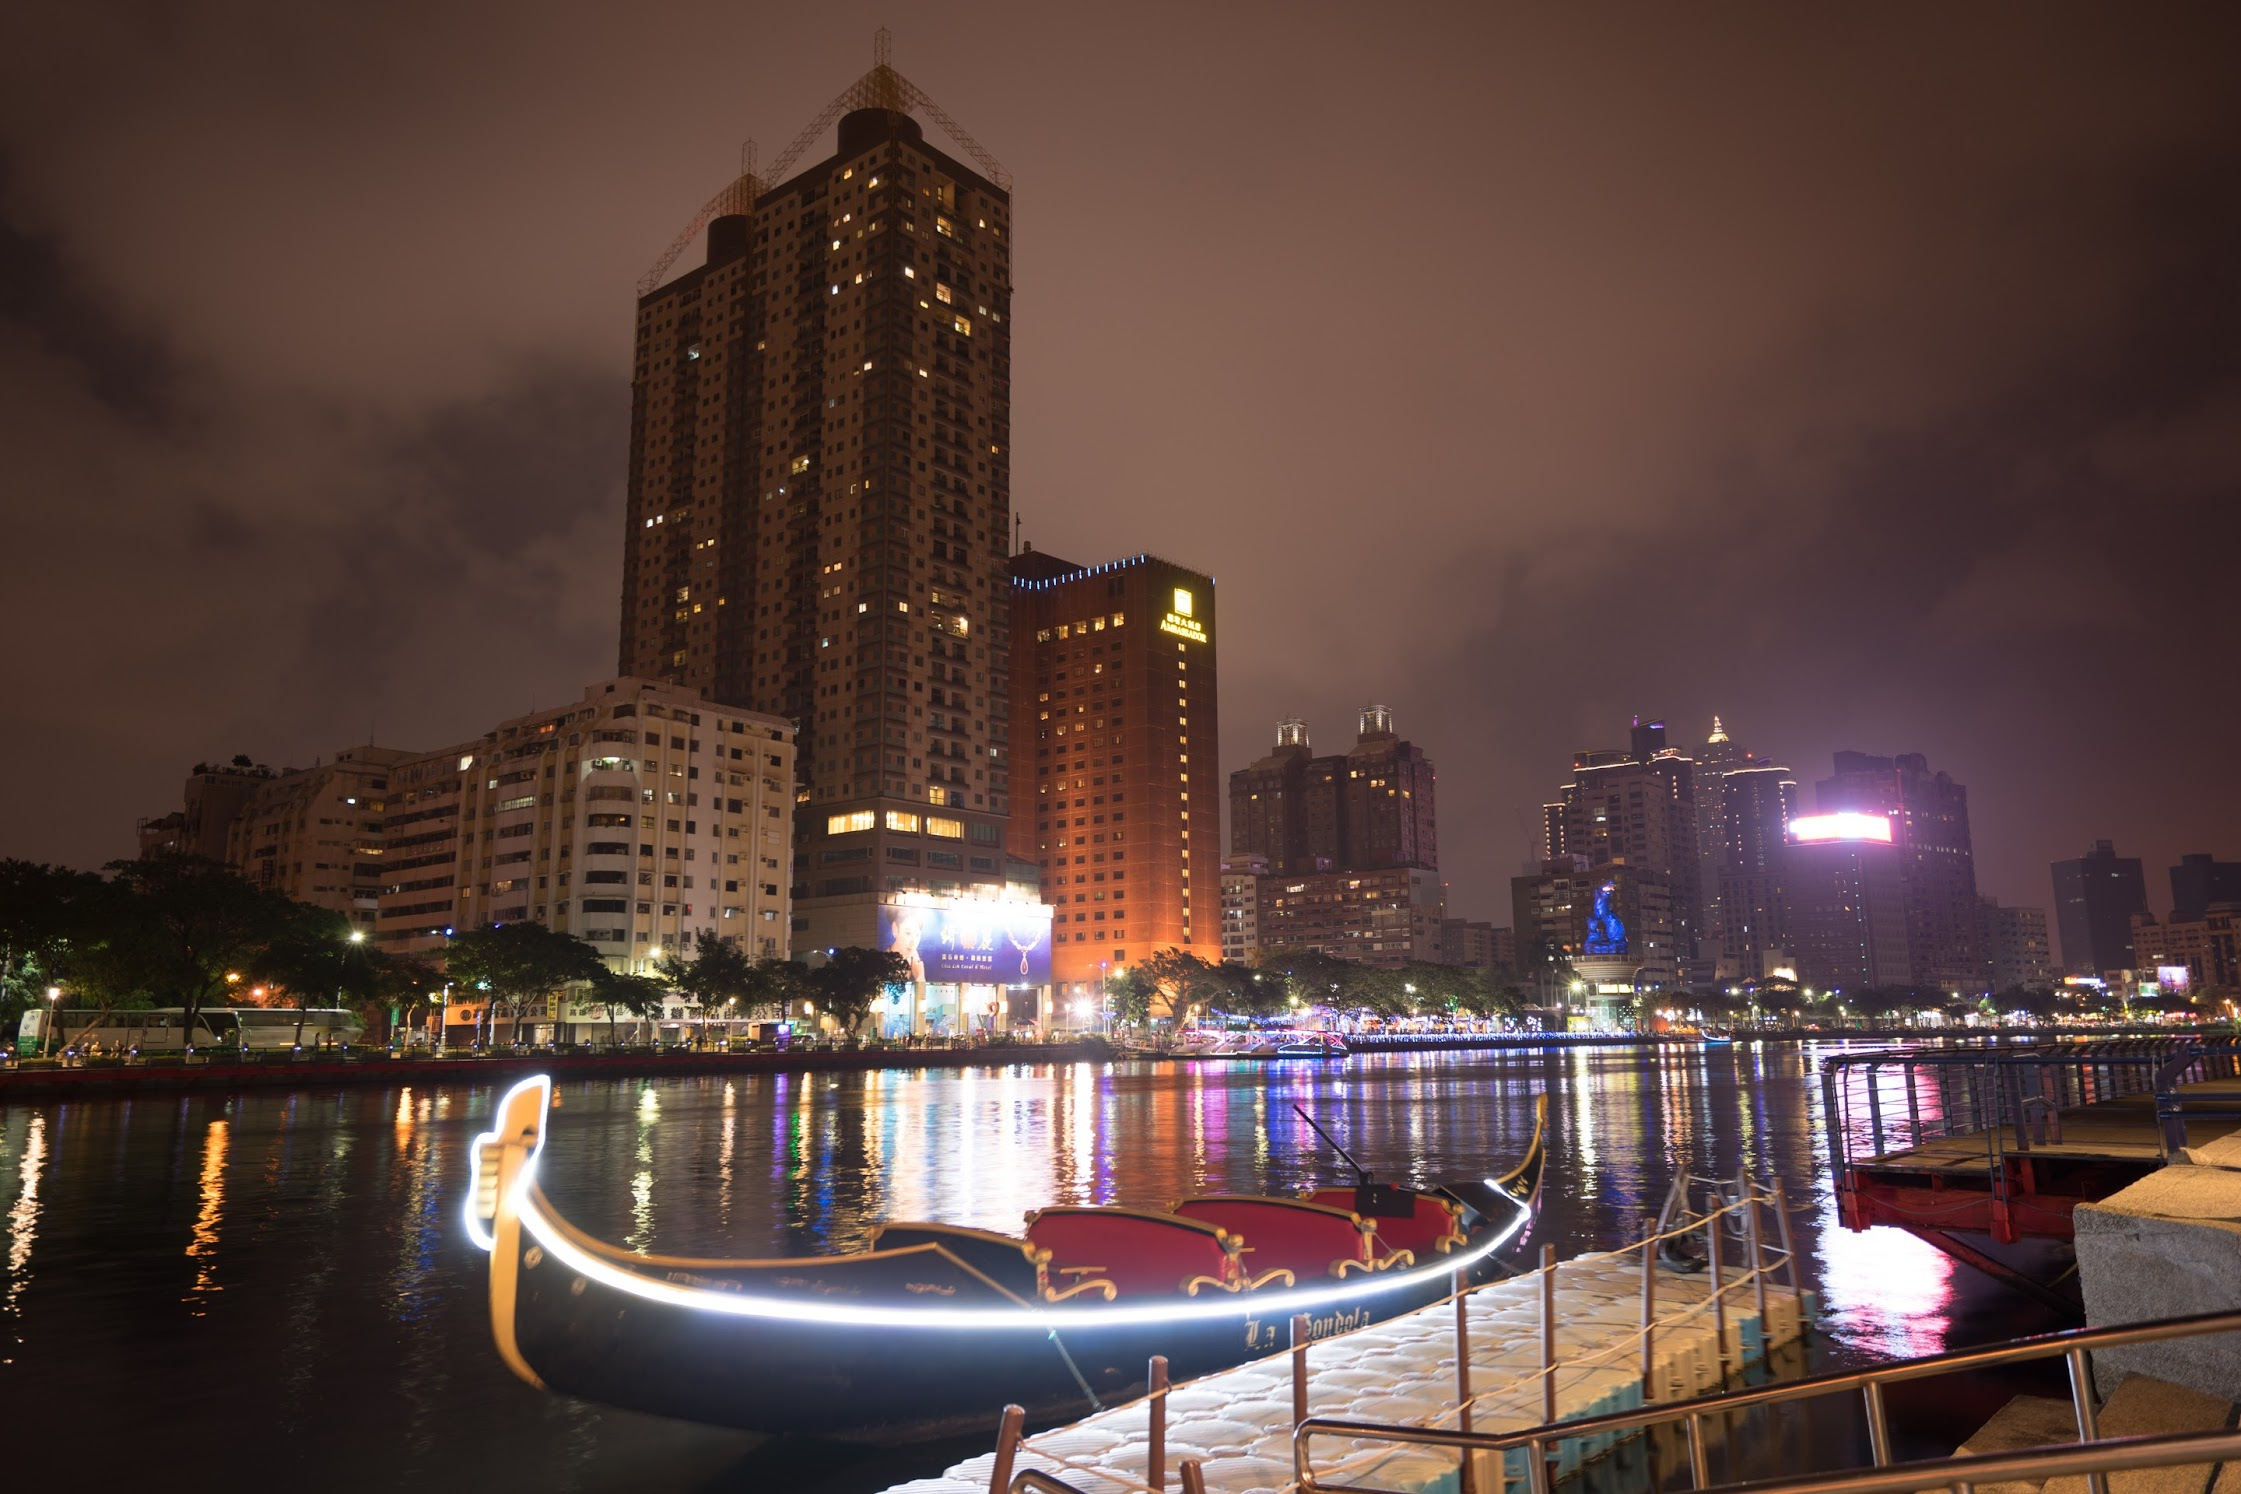 Taiwan Kaohsiung Love River evening view3